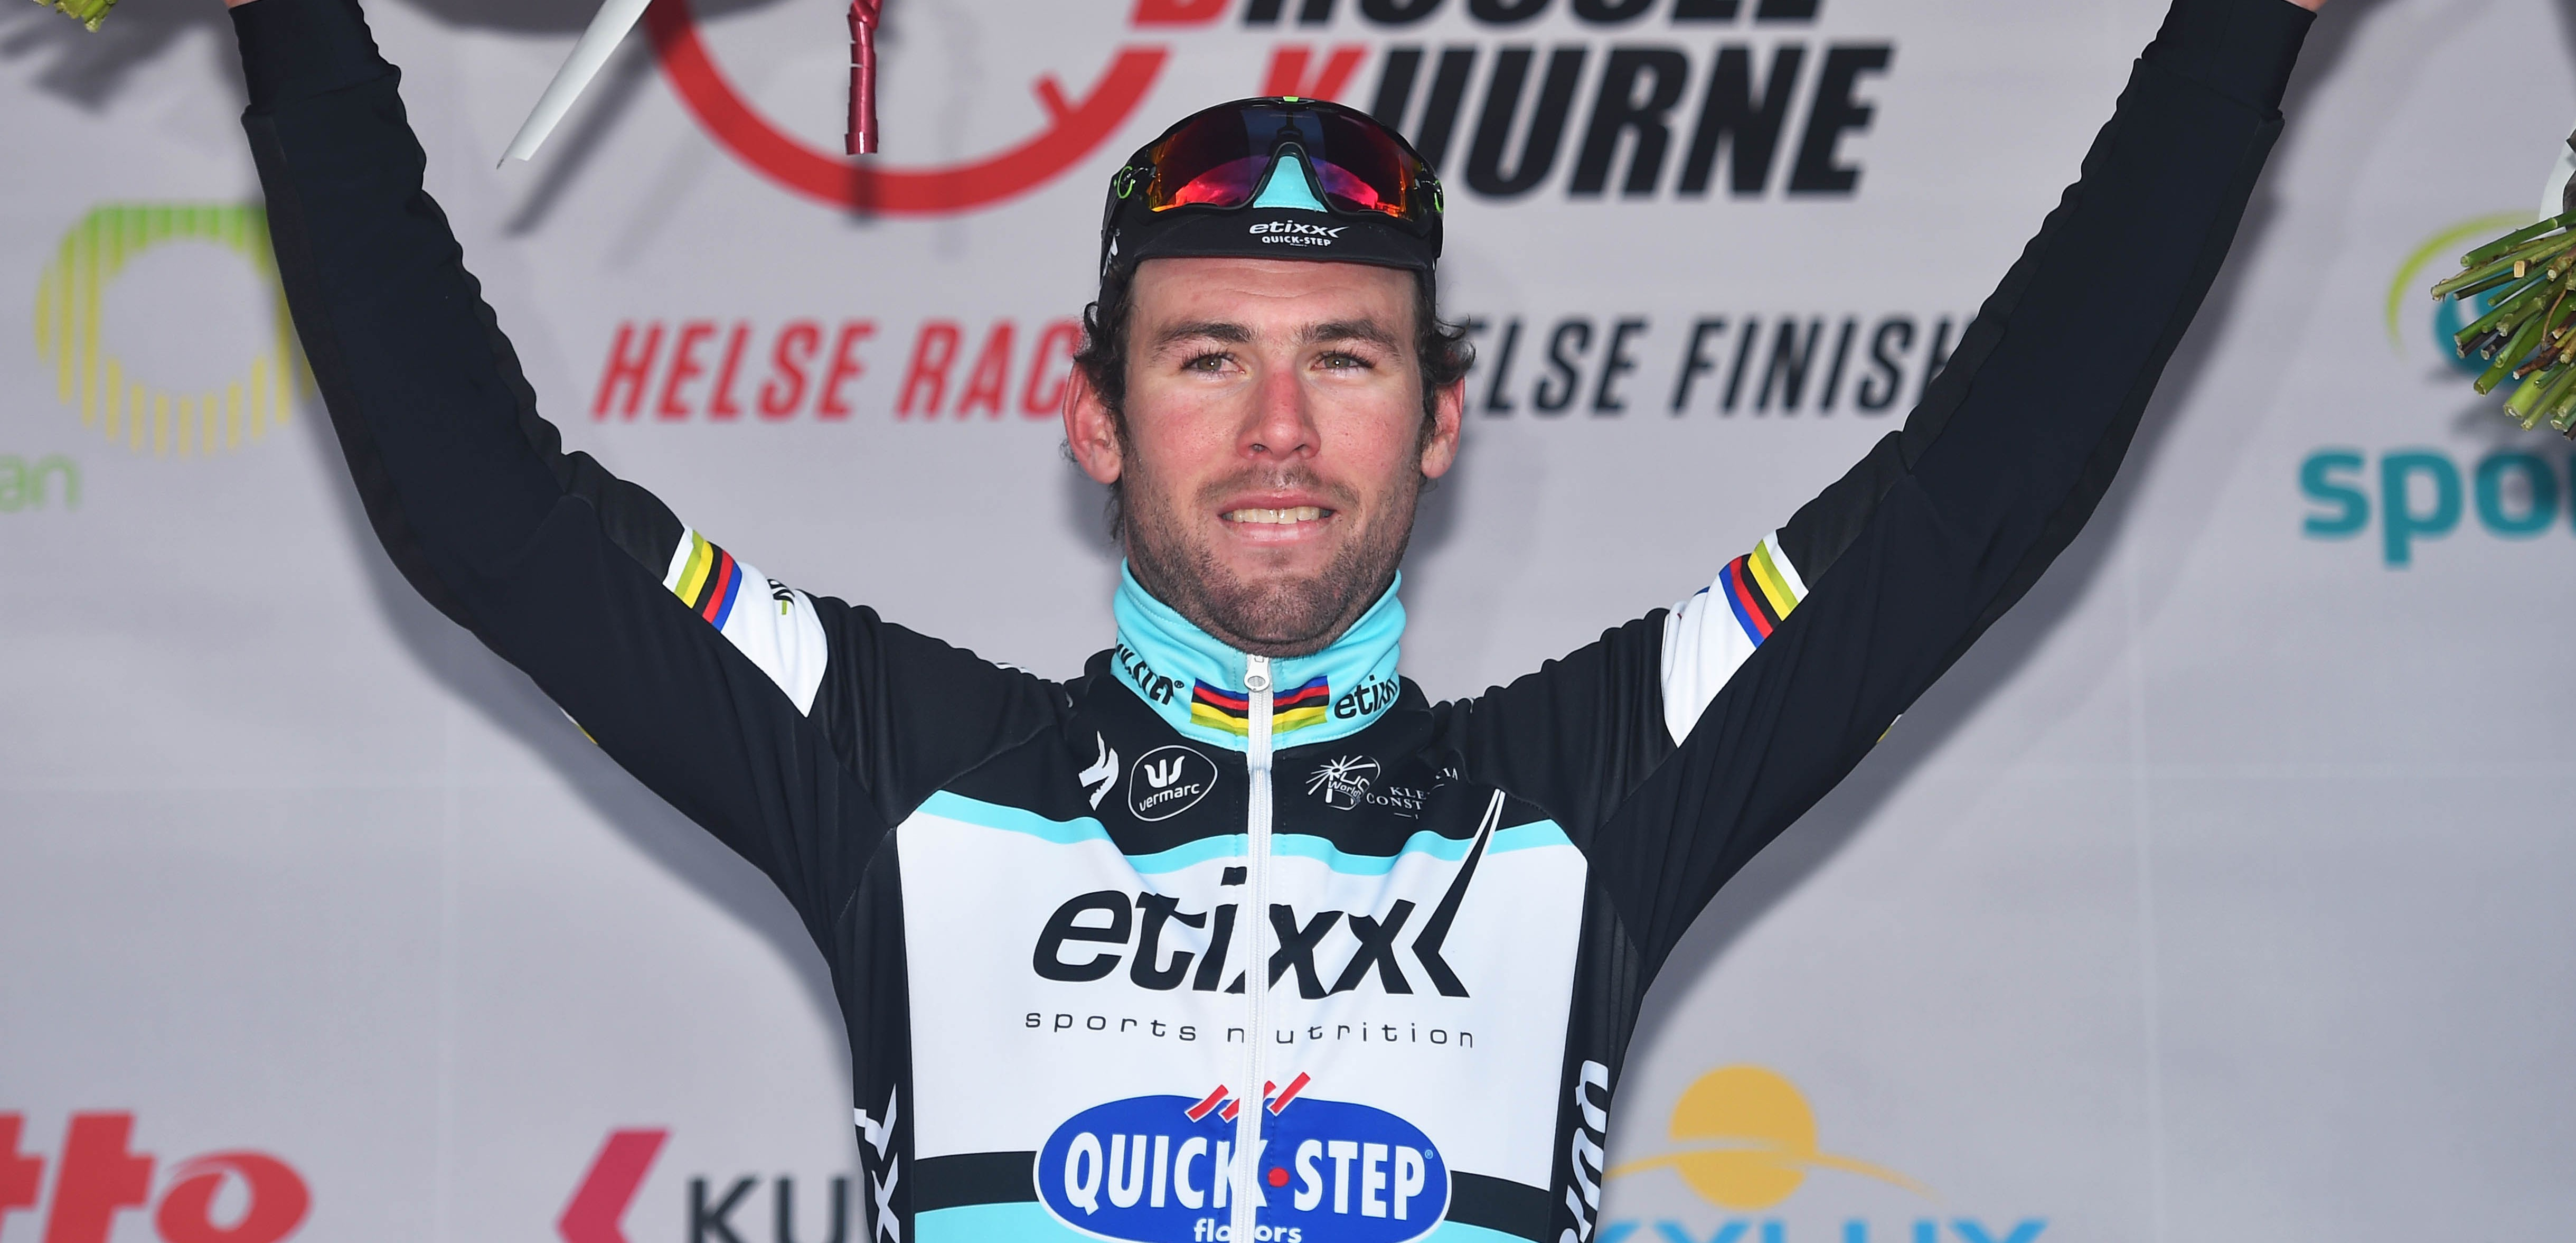 Mark Cavendish - © Etixx - Quick-Step / Tim de Waele